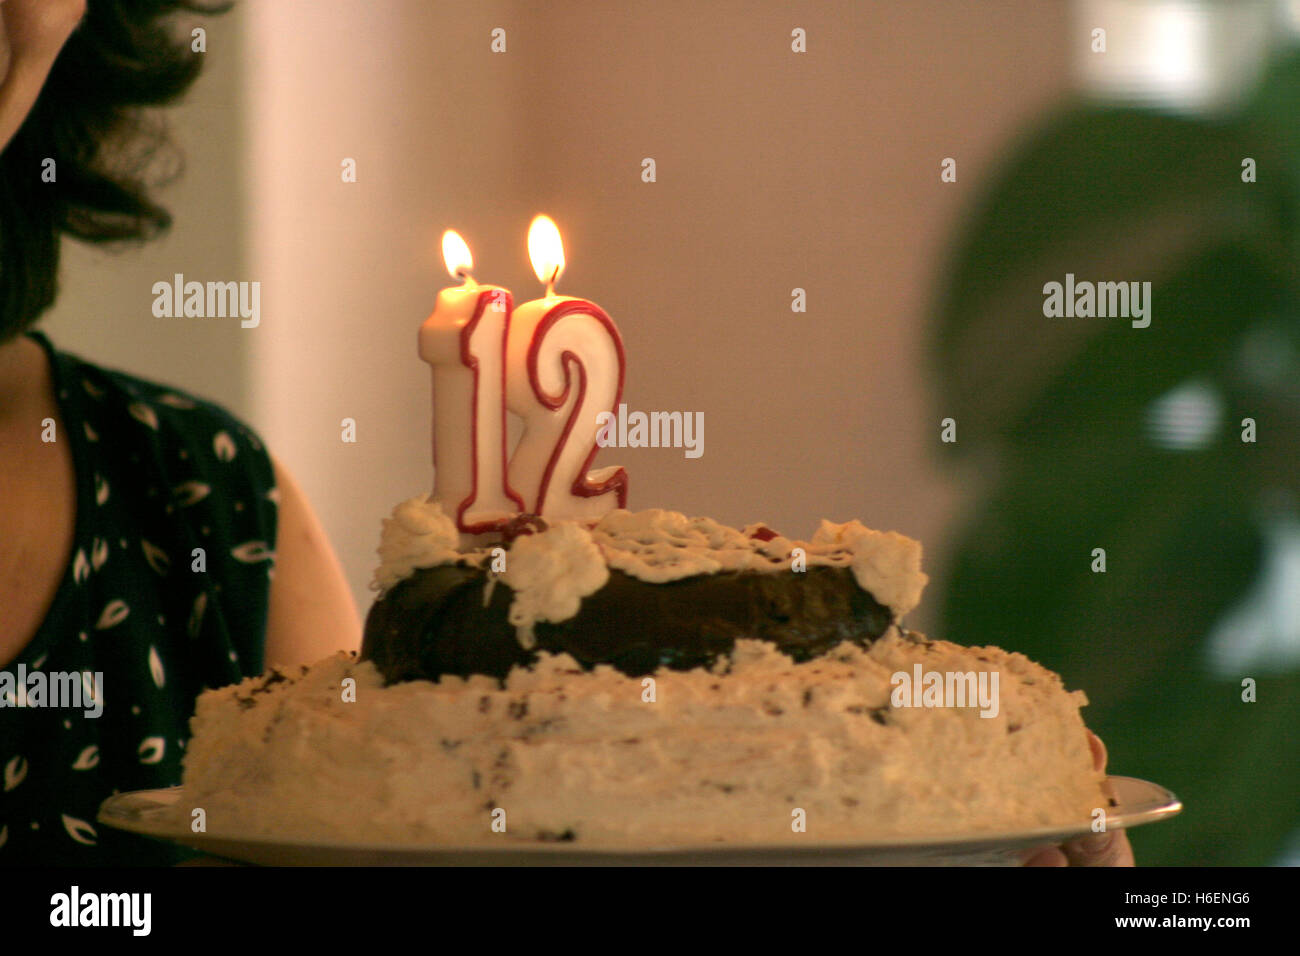 Stupendous Birthday Cake With Burning Candles For 12 Years Old Celebration Funny Birthday Cards Online Overcheapnameinfo